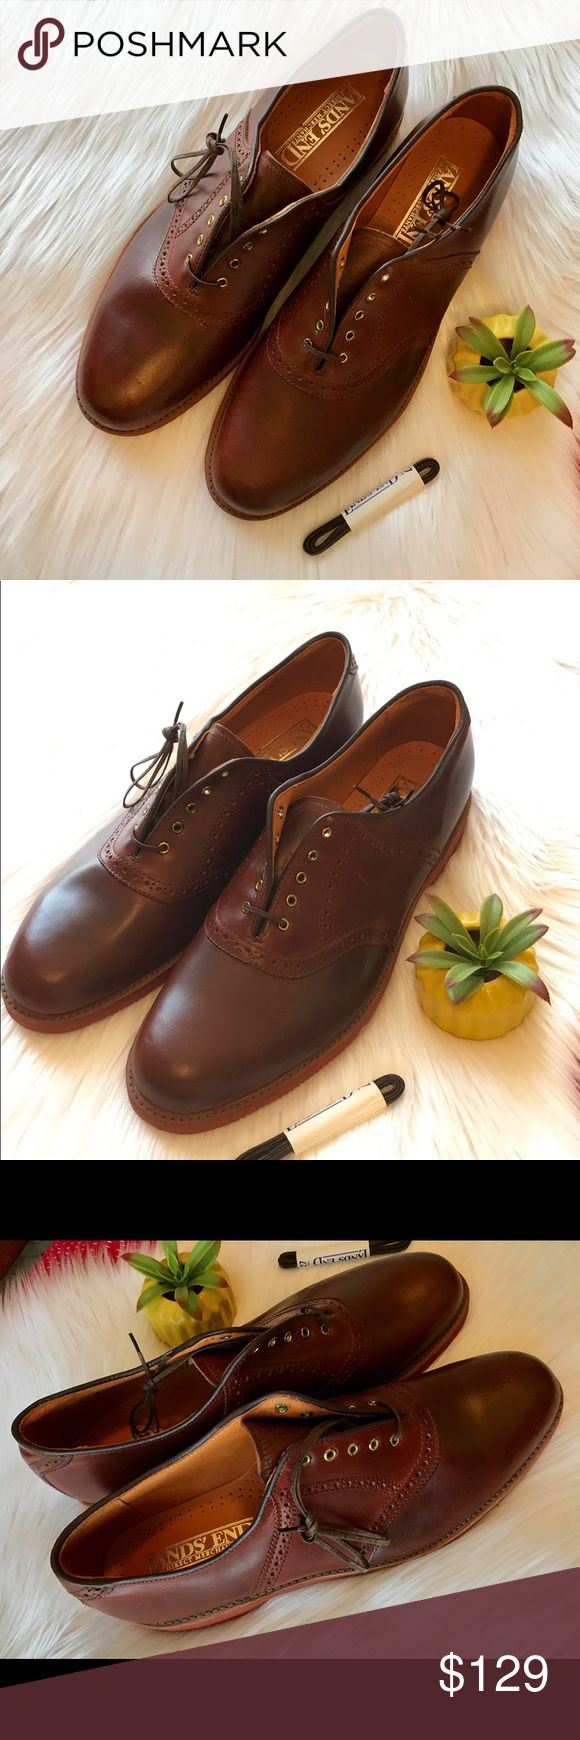 Men's Lands End Brown Leather Dress Saddle Shoes Men's lands' end brown leather dress saddle shoes lace up size 13 M vintage. NIB. Genuine leather. Have a non skid vibran sole never wore made in USA original Lands' End Shoes Oxfords & Derbys